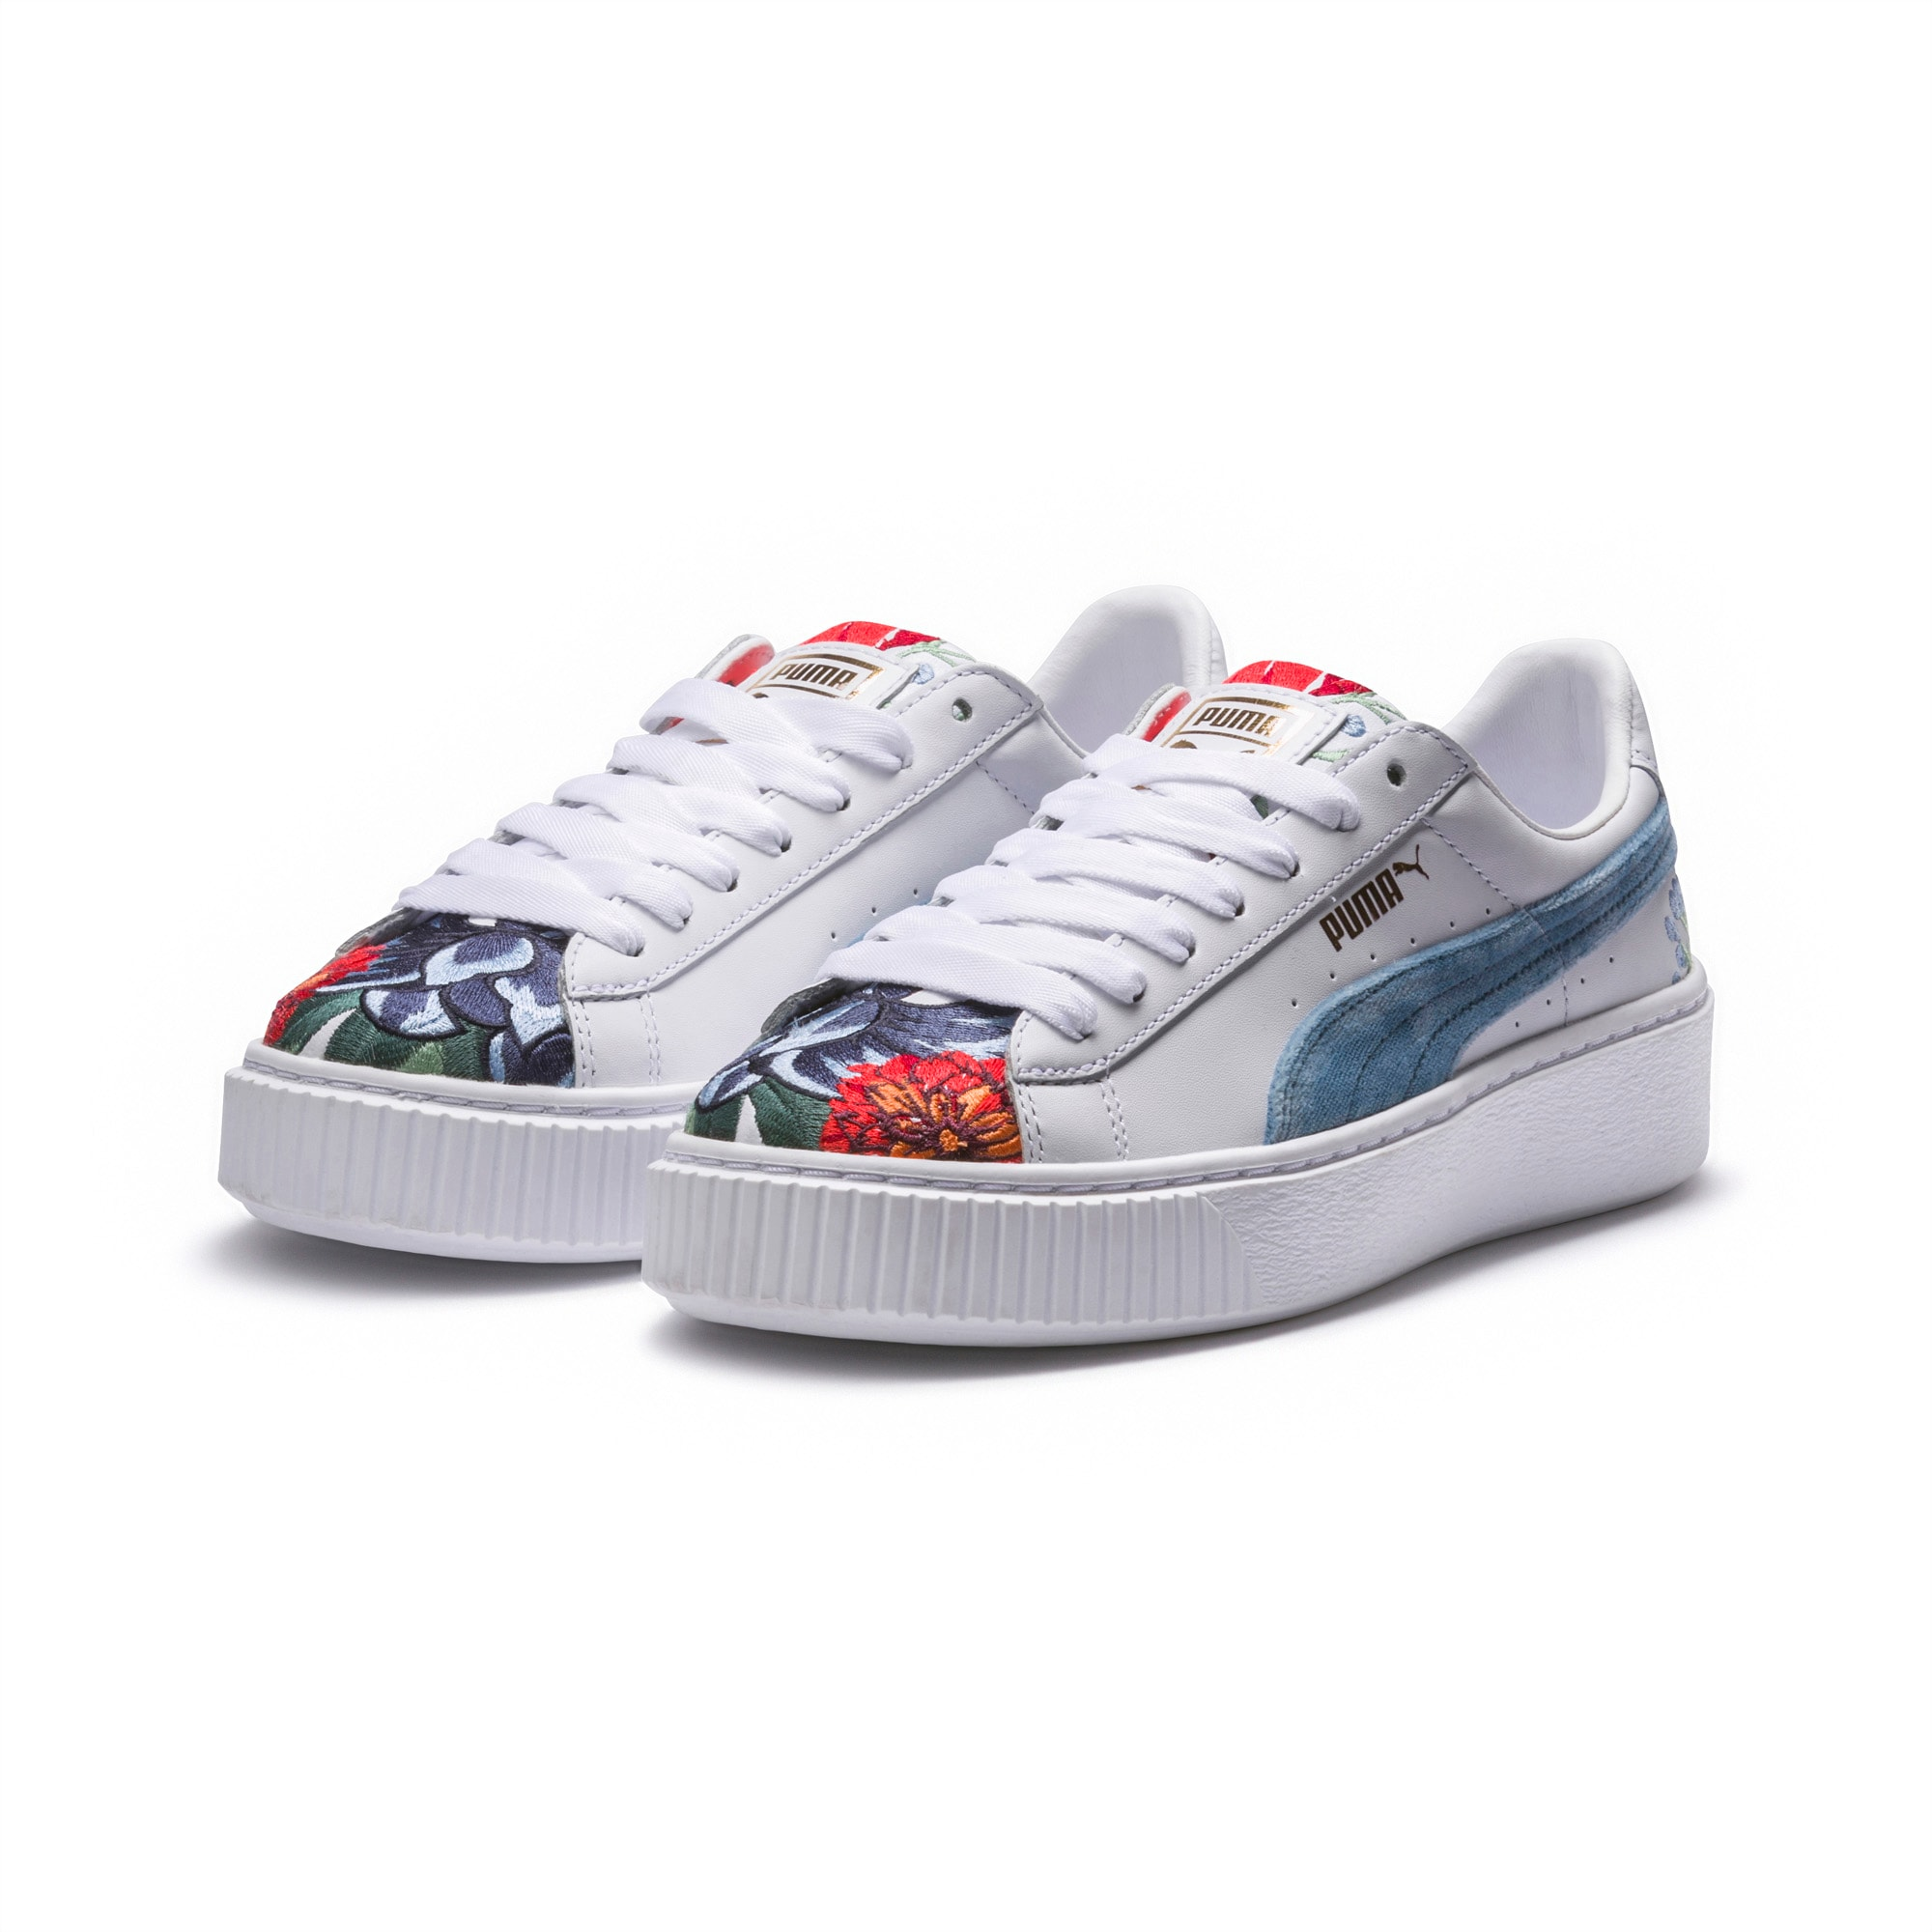 Platform Hyper Embroidered Women's Trainers